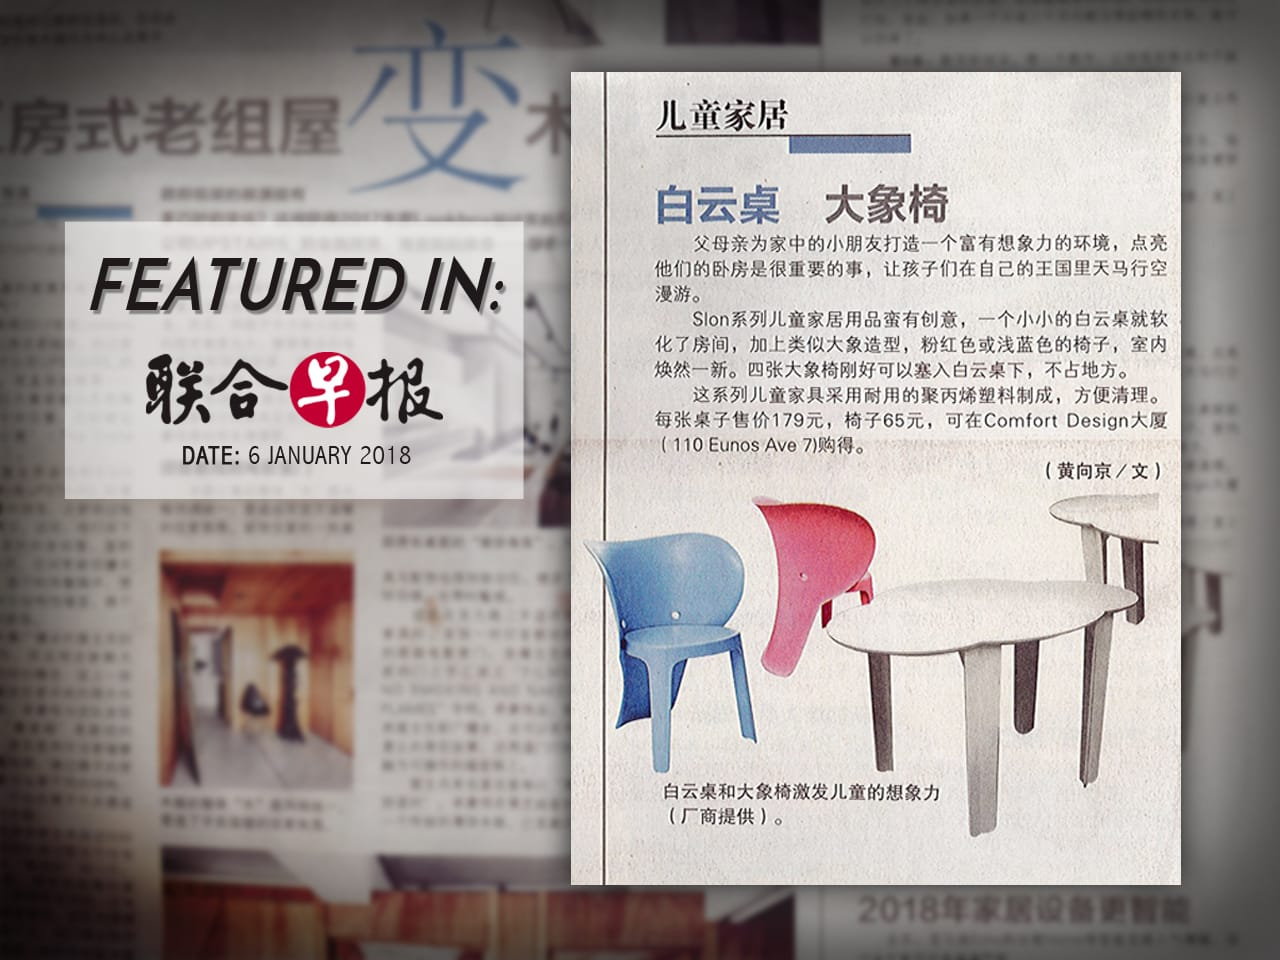 LianHe ZaoBao (6 January 2018) – Slon Kids' Furniture